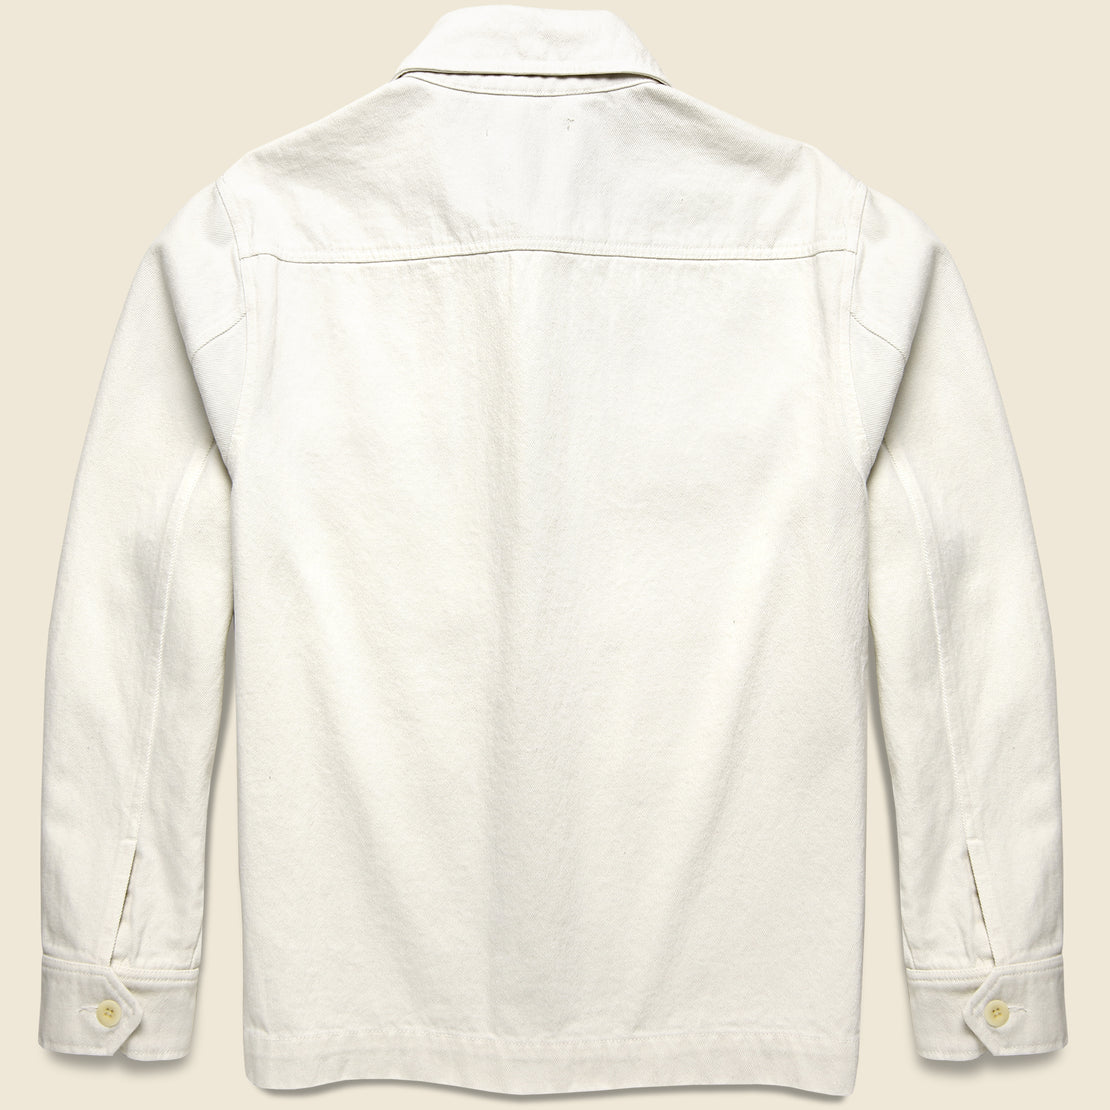 Upcycled Cotton Work Jacket - White